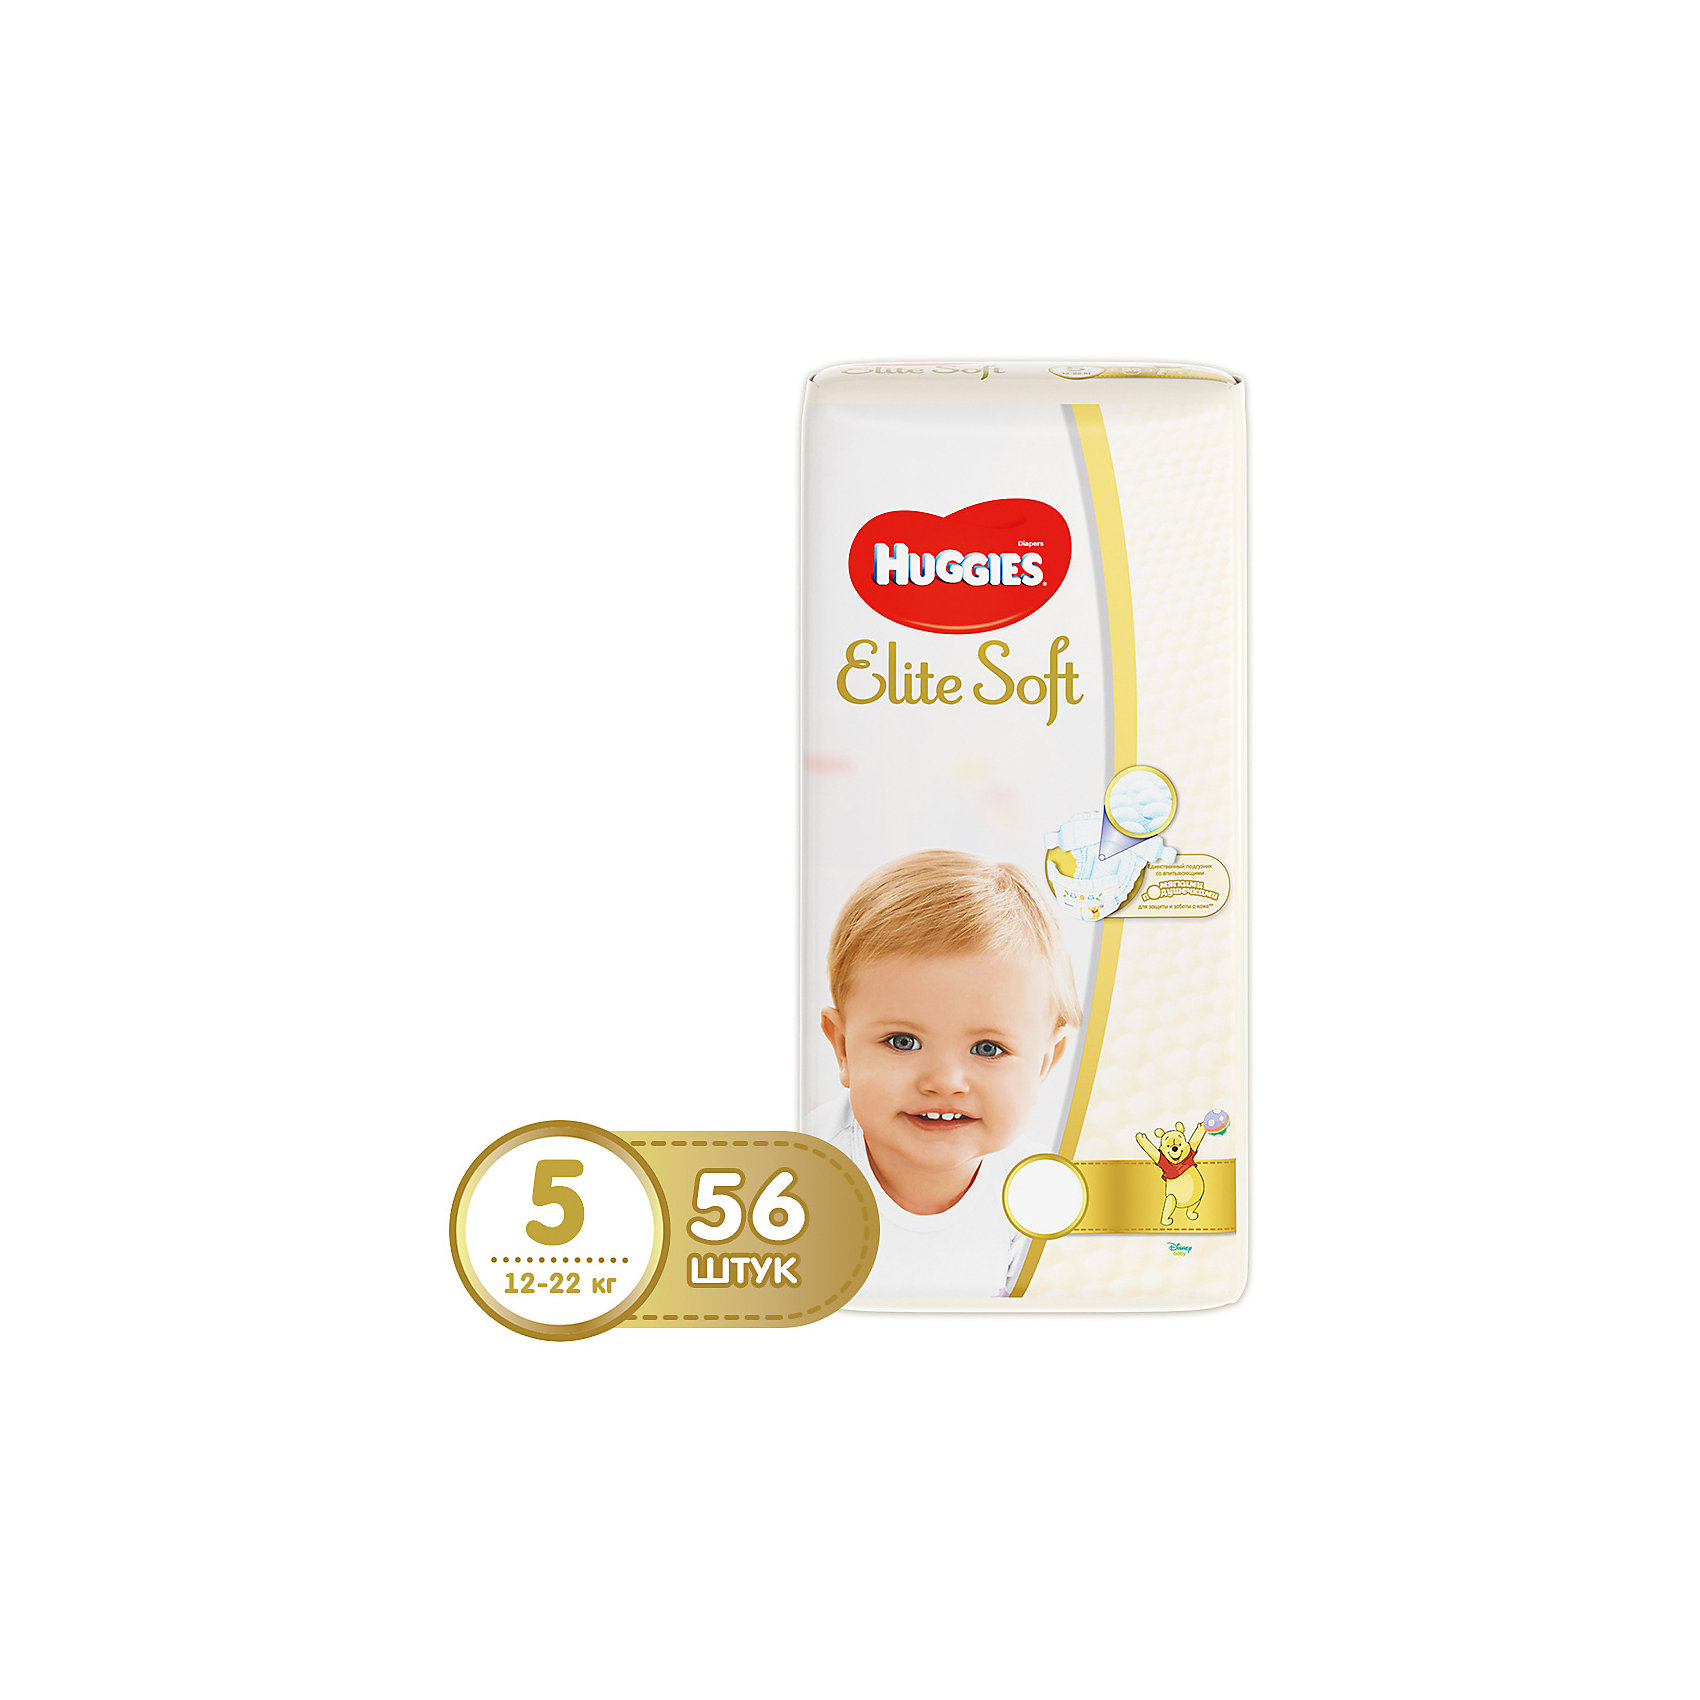 HUGGIES Подгузники Elite Soft 5, 12-22 кг, 56 шт., Huggies greenty подгузники greenty 5 13 кг 32 шт